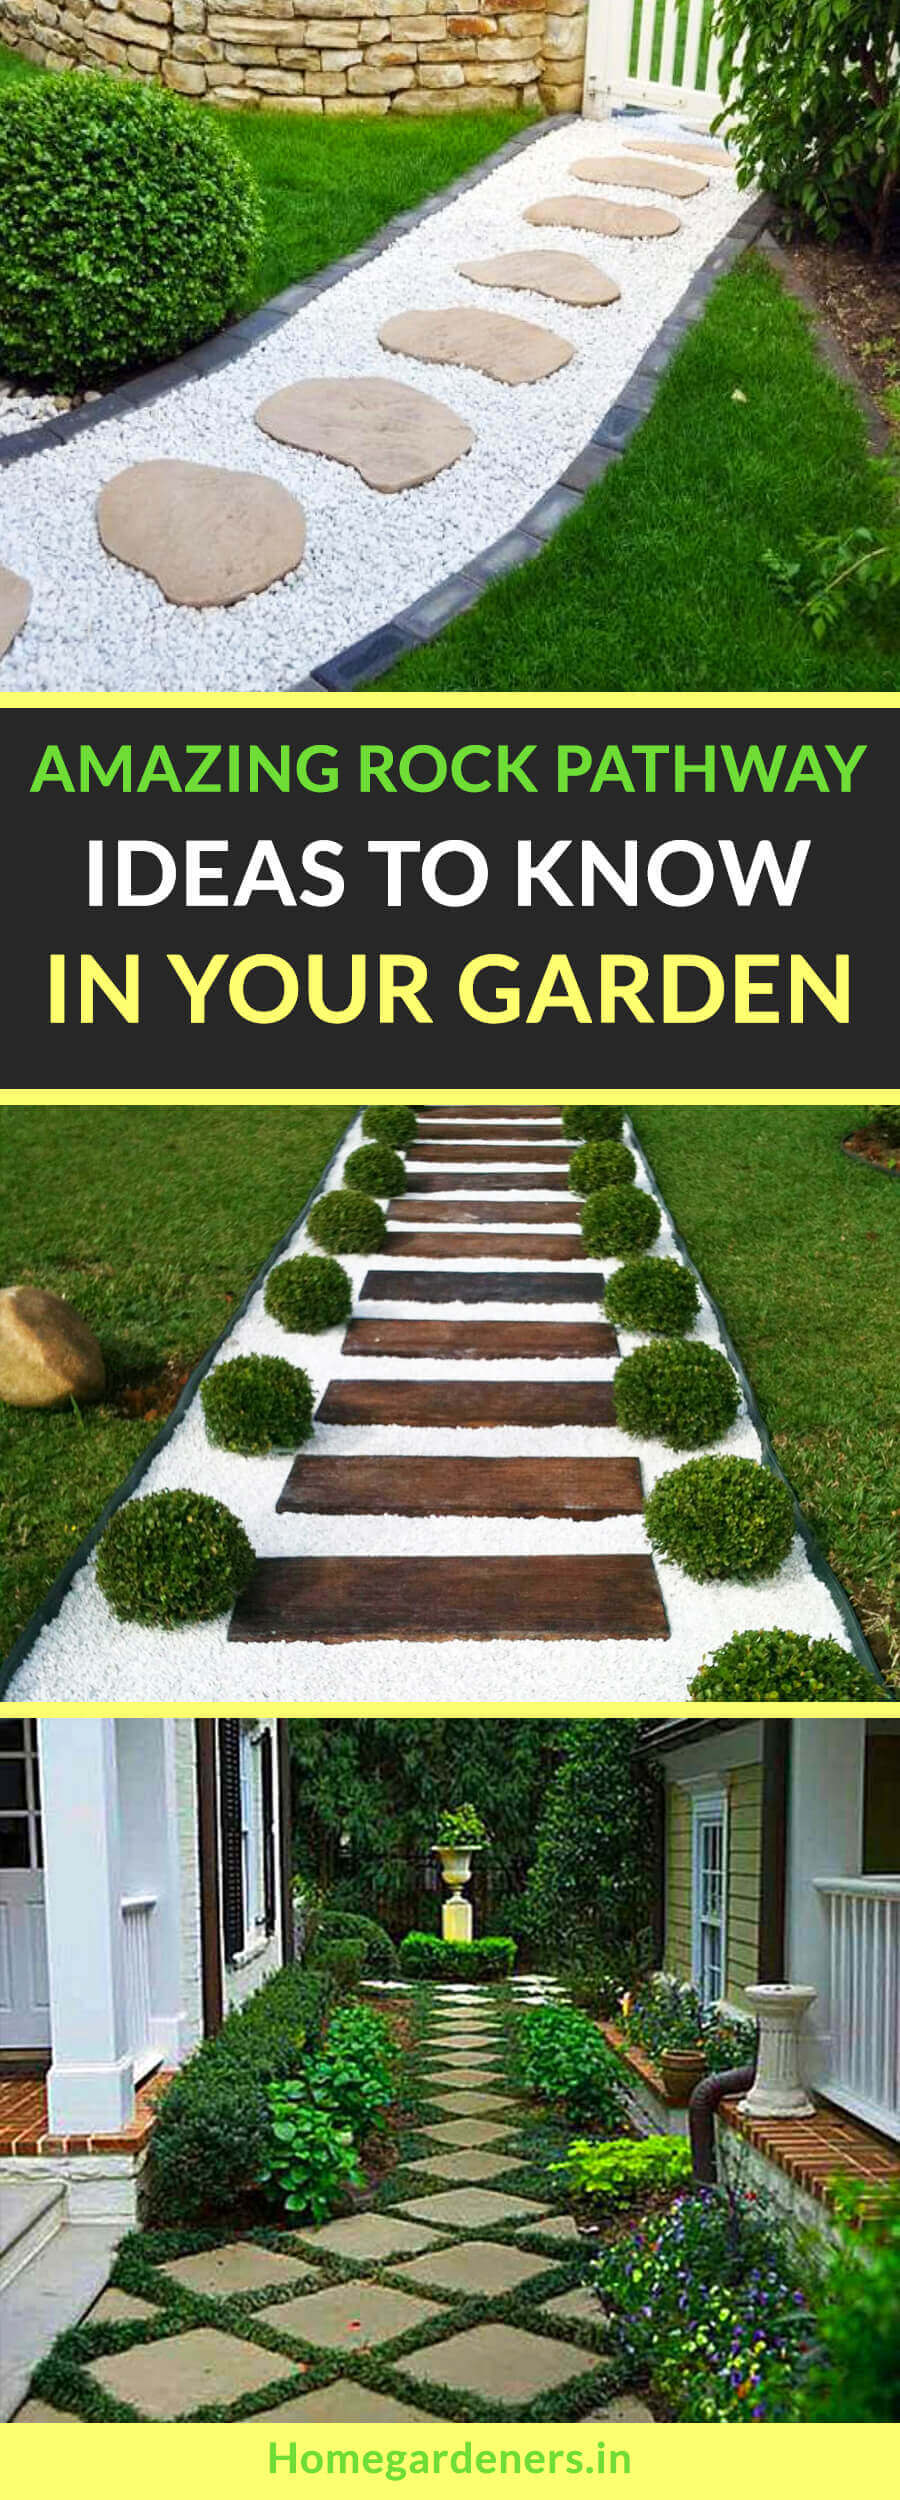 11 Amazing Rock Pathway Ideas to know in your Garden